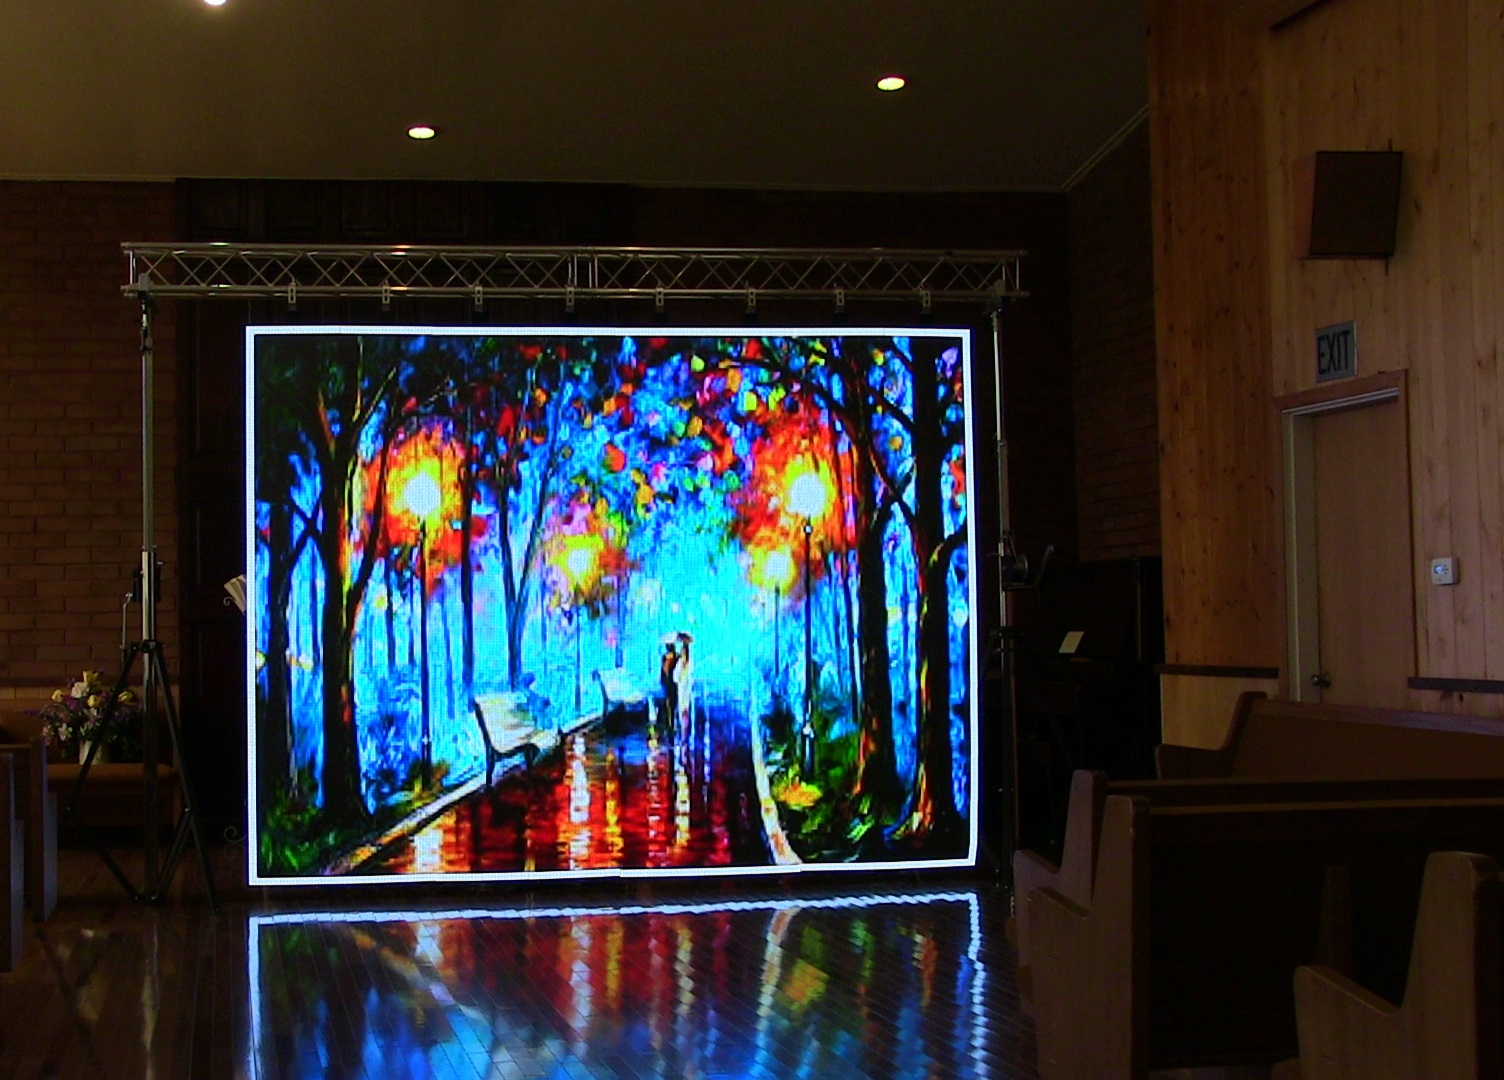 Video Wall Display Technology